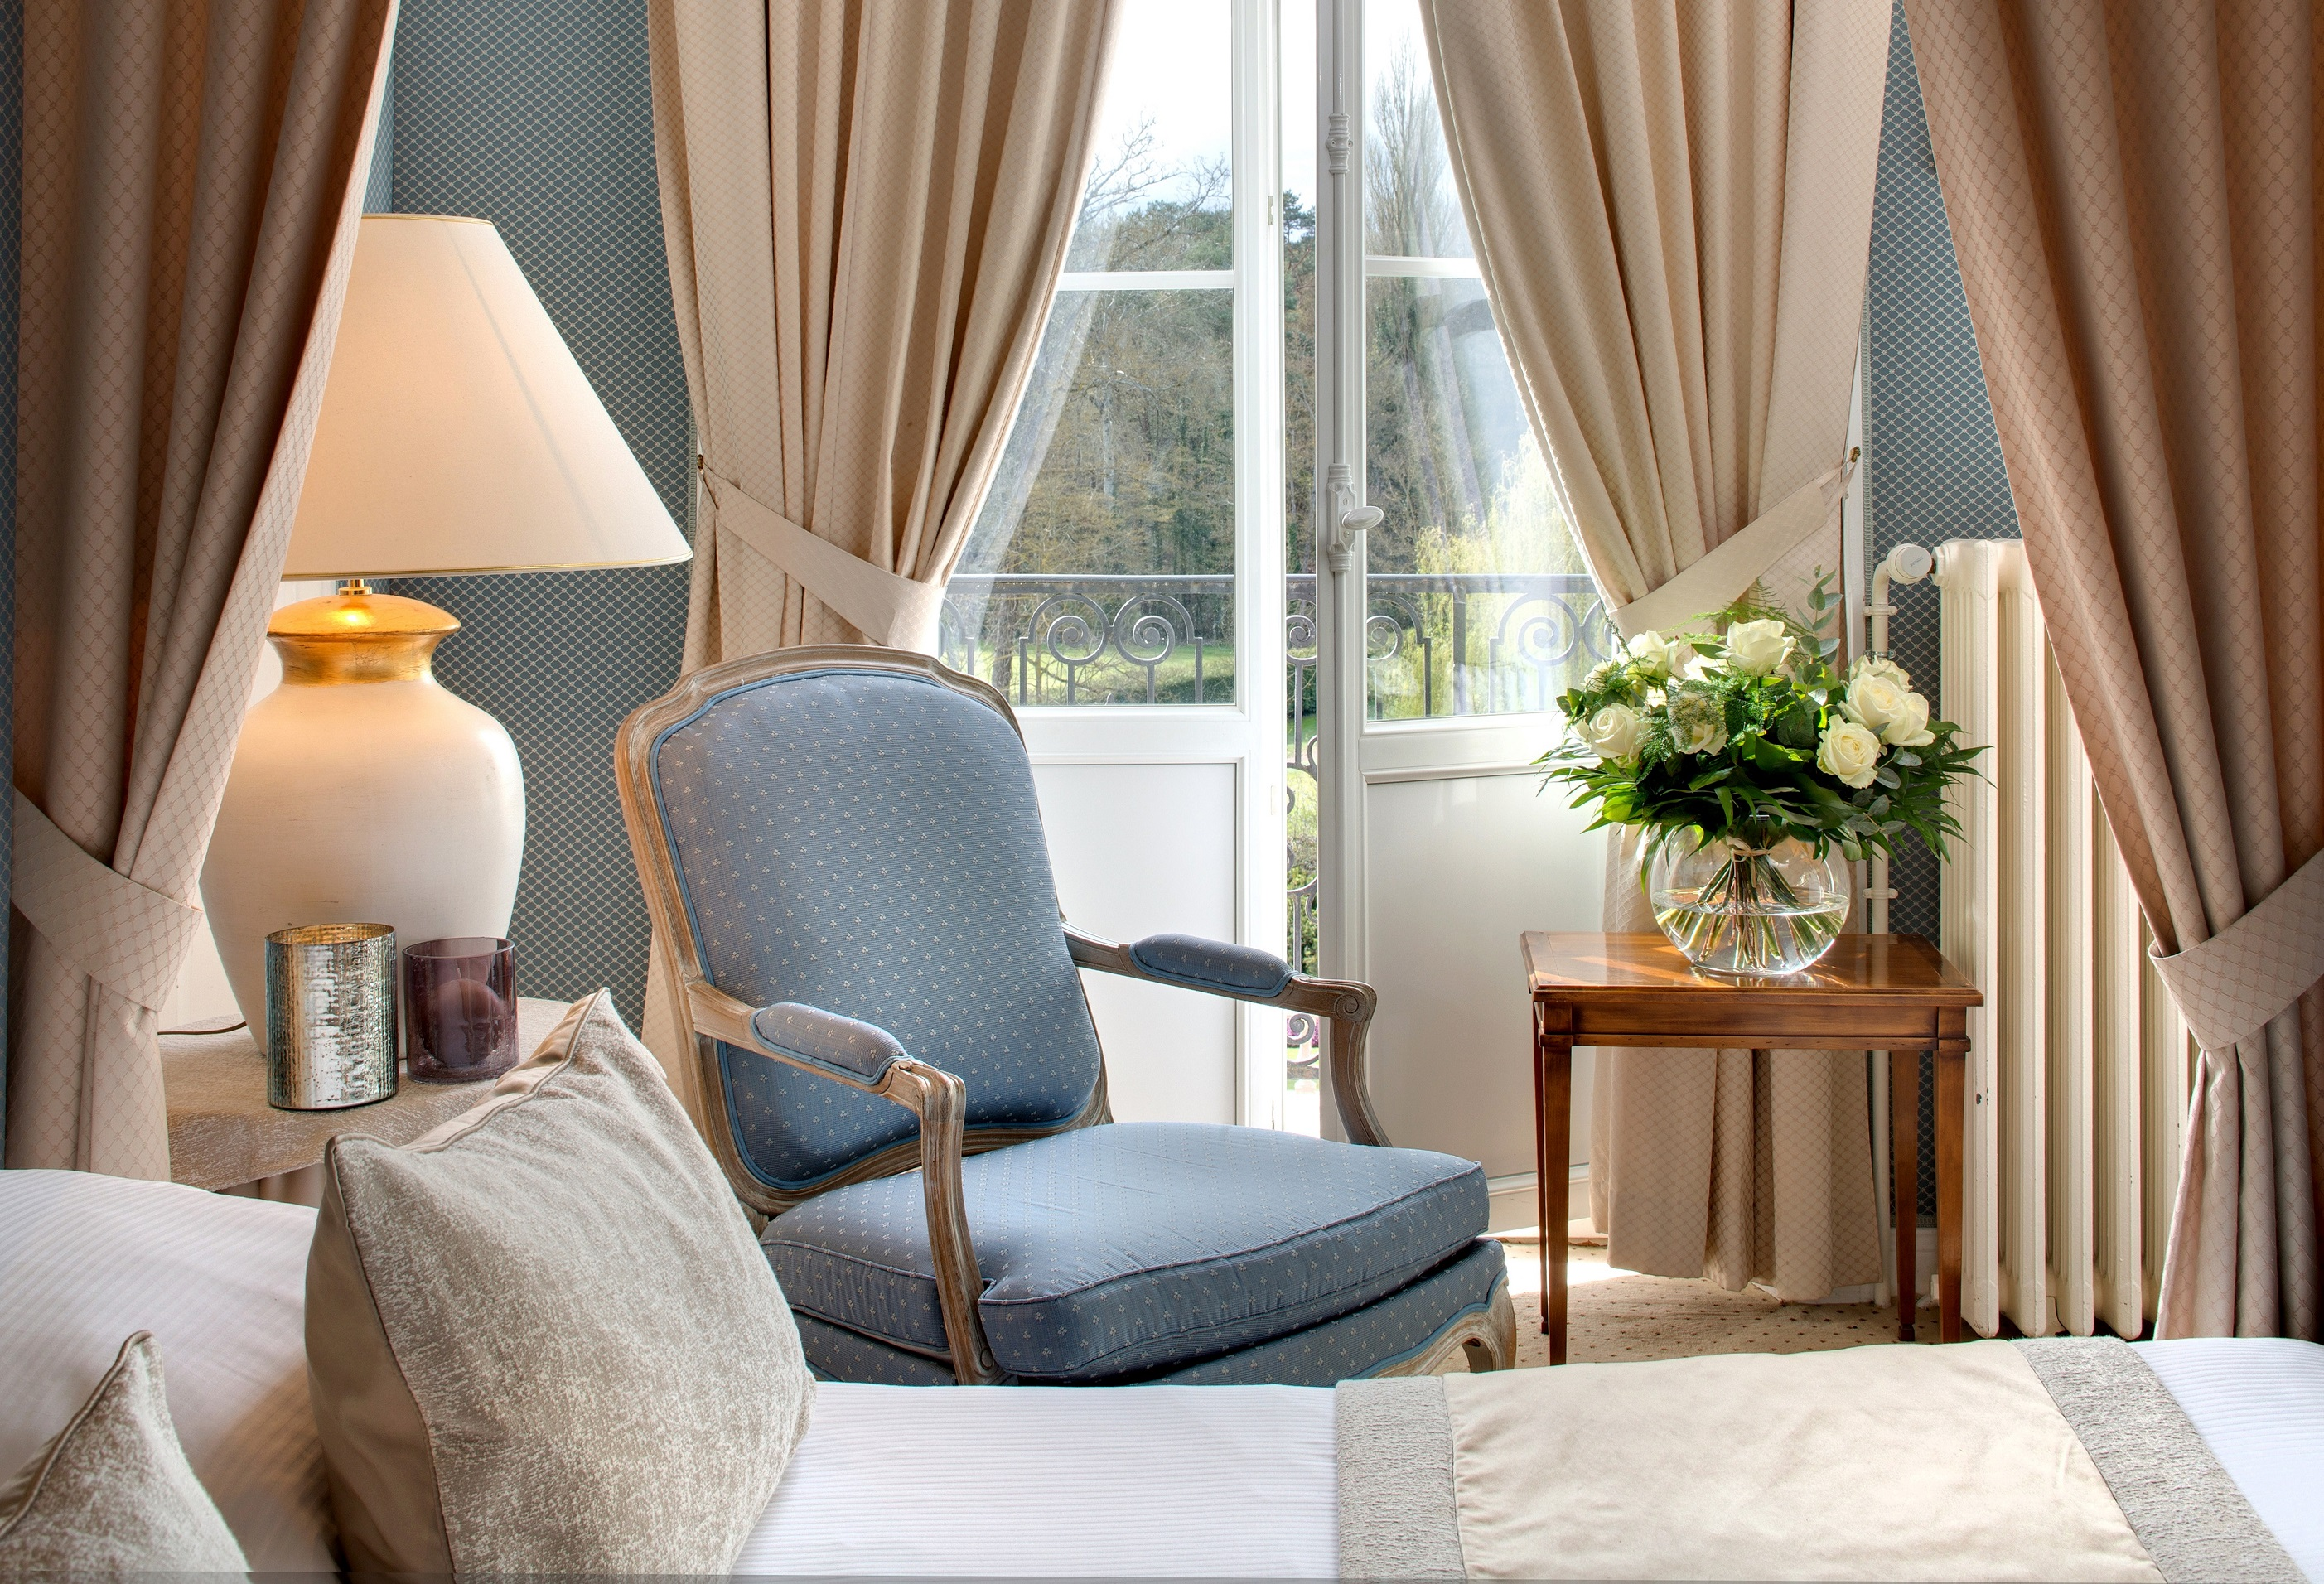 271/Domaine_Vaugouard/Chambres/Chambre_Deluxe_Chateau-_vue_golf-WEB.jpg